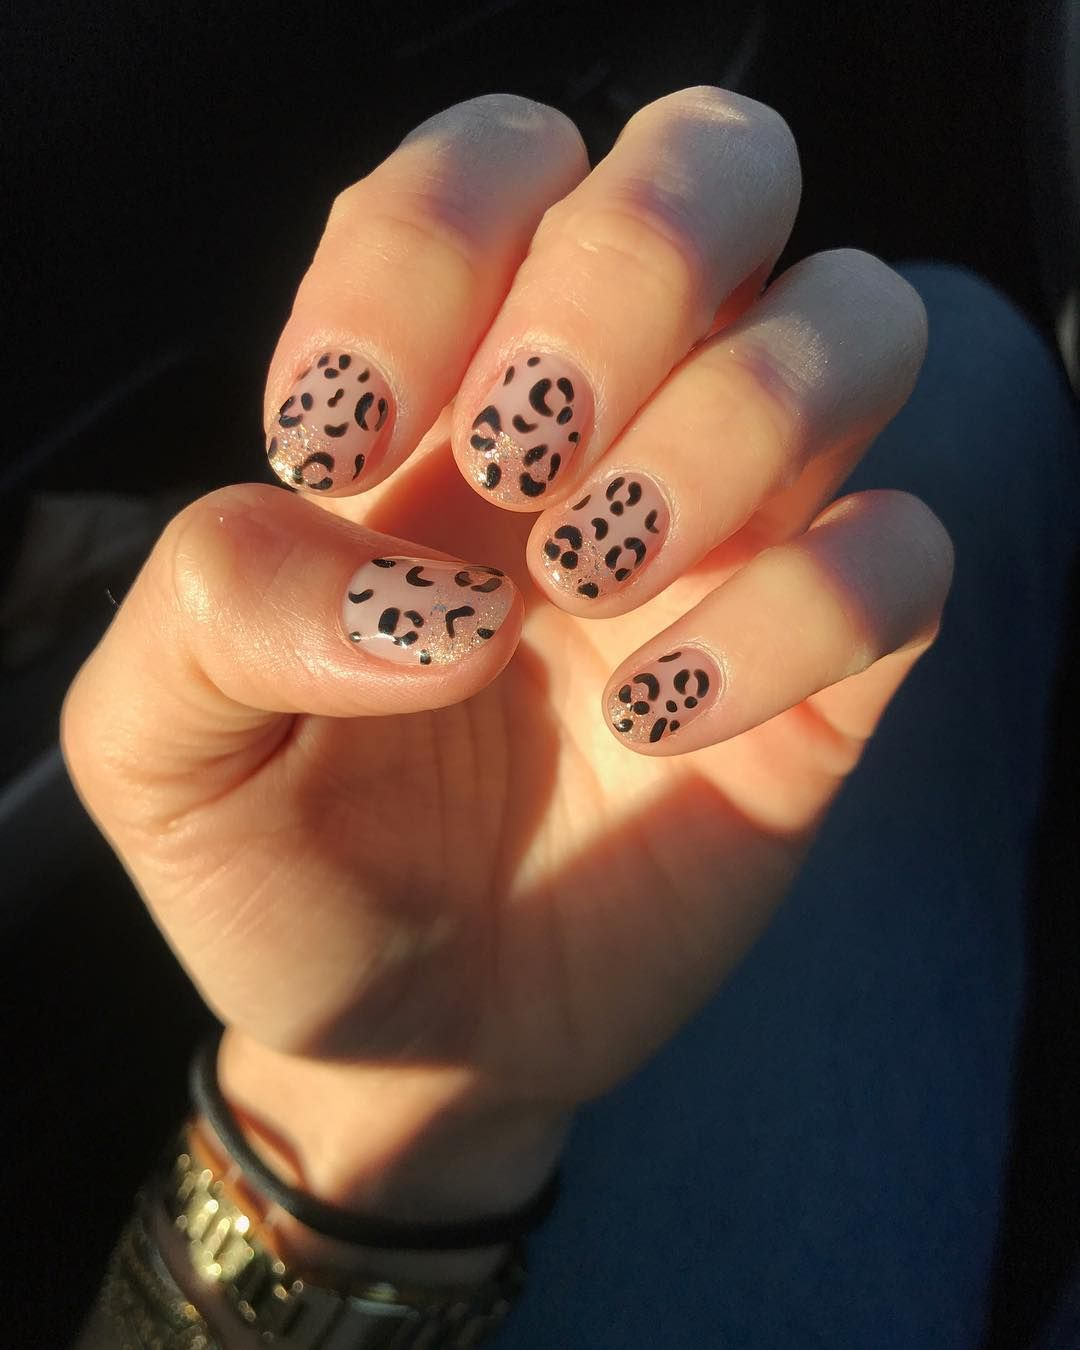 Animal-Print Nail Art Is The Chicest Summer Accessory | Nail Art ...